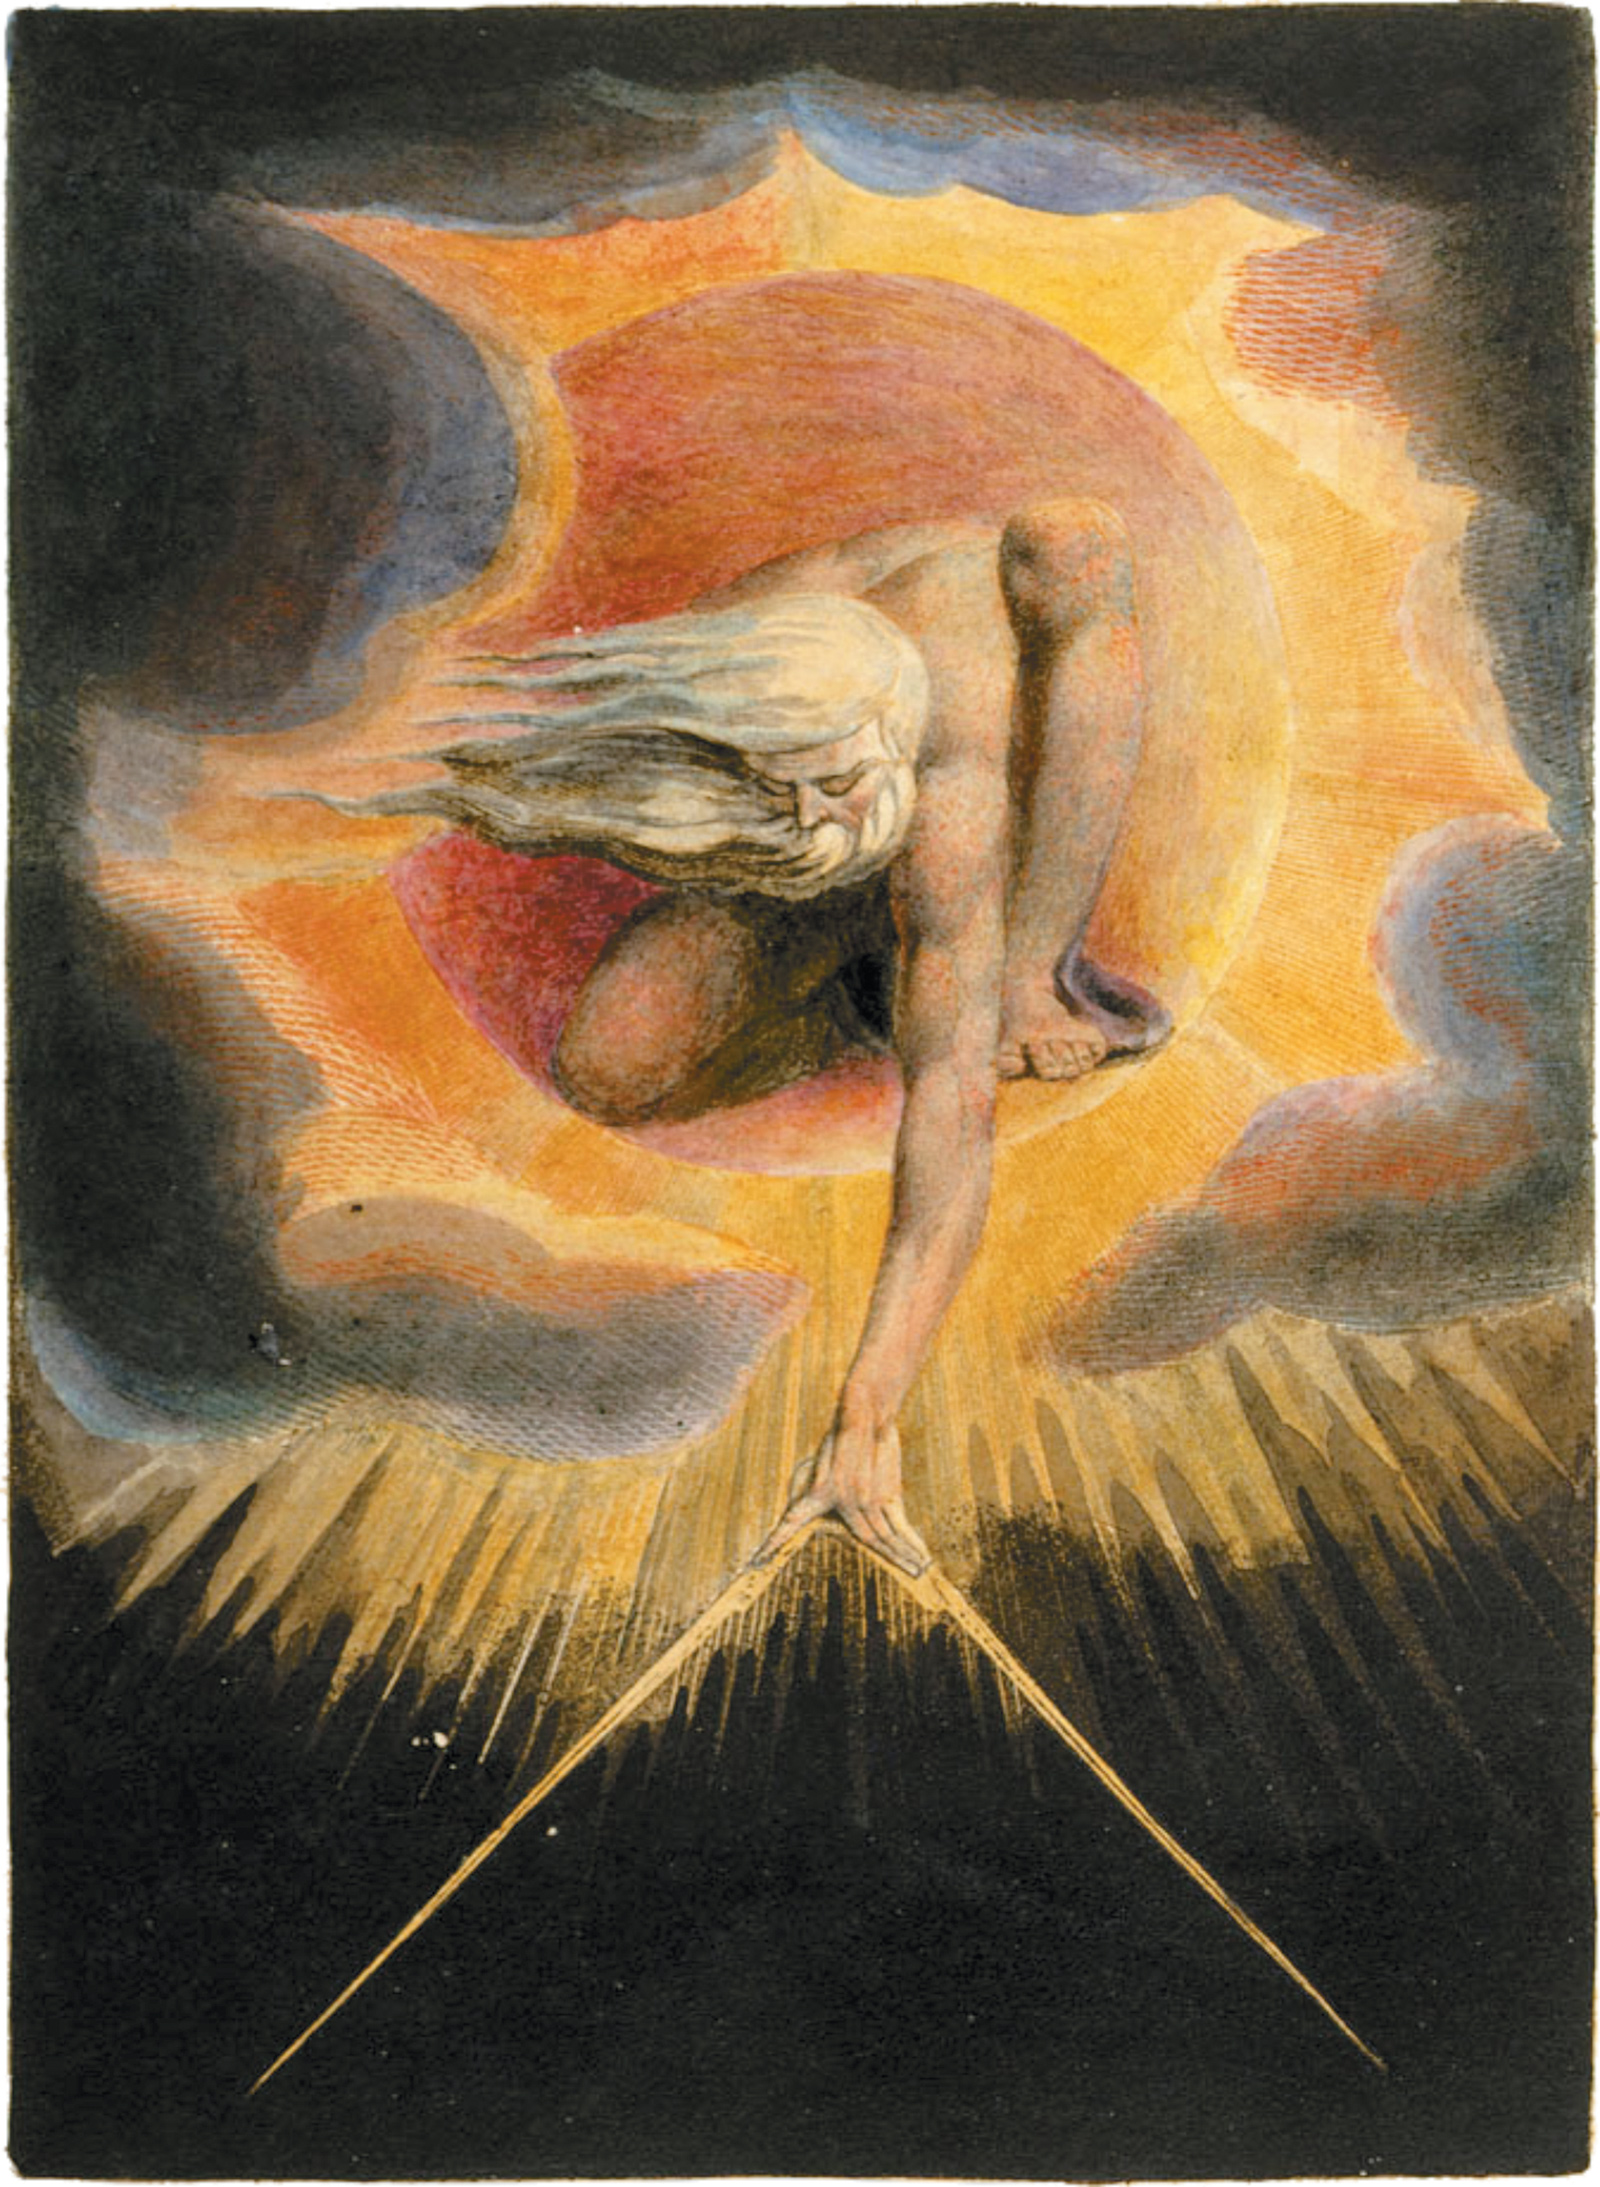 William Blake: The Ancient of Days, frontispiece to Europe a Prophecy, 1794